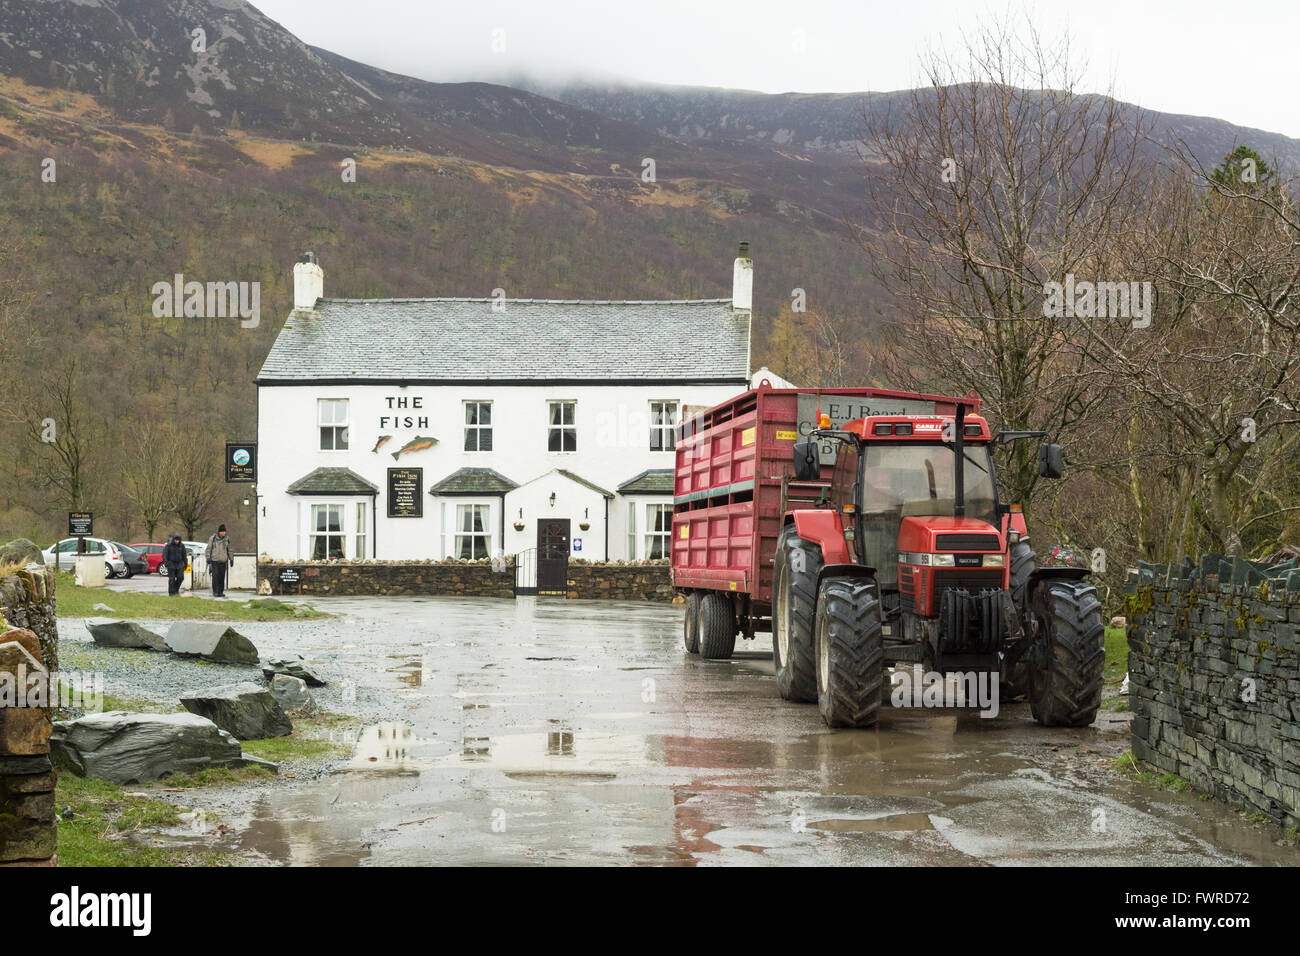 The Fish Inn, Buttermere, Lake District, Cumbria, England on a rainy day in spring - Stock Image